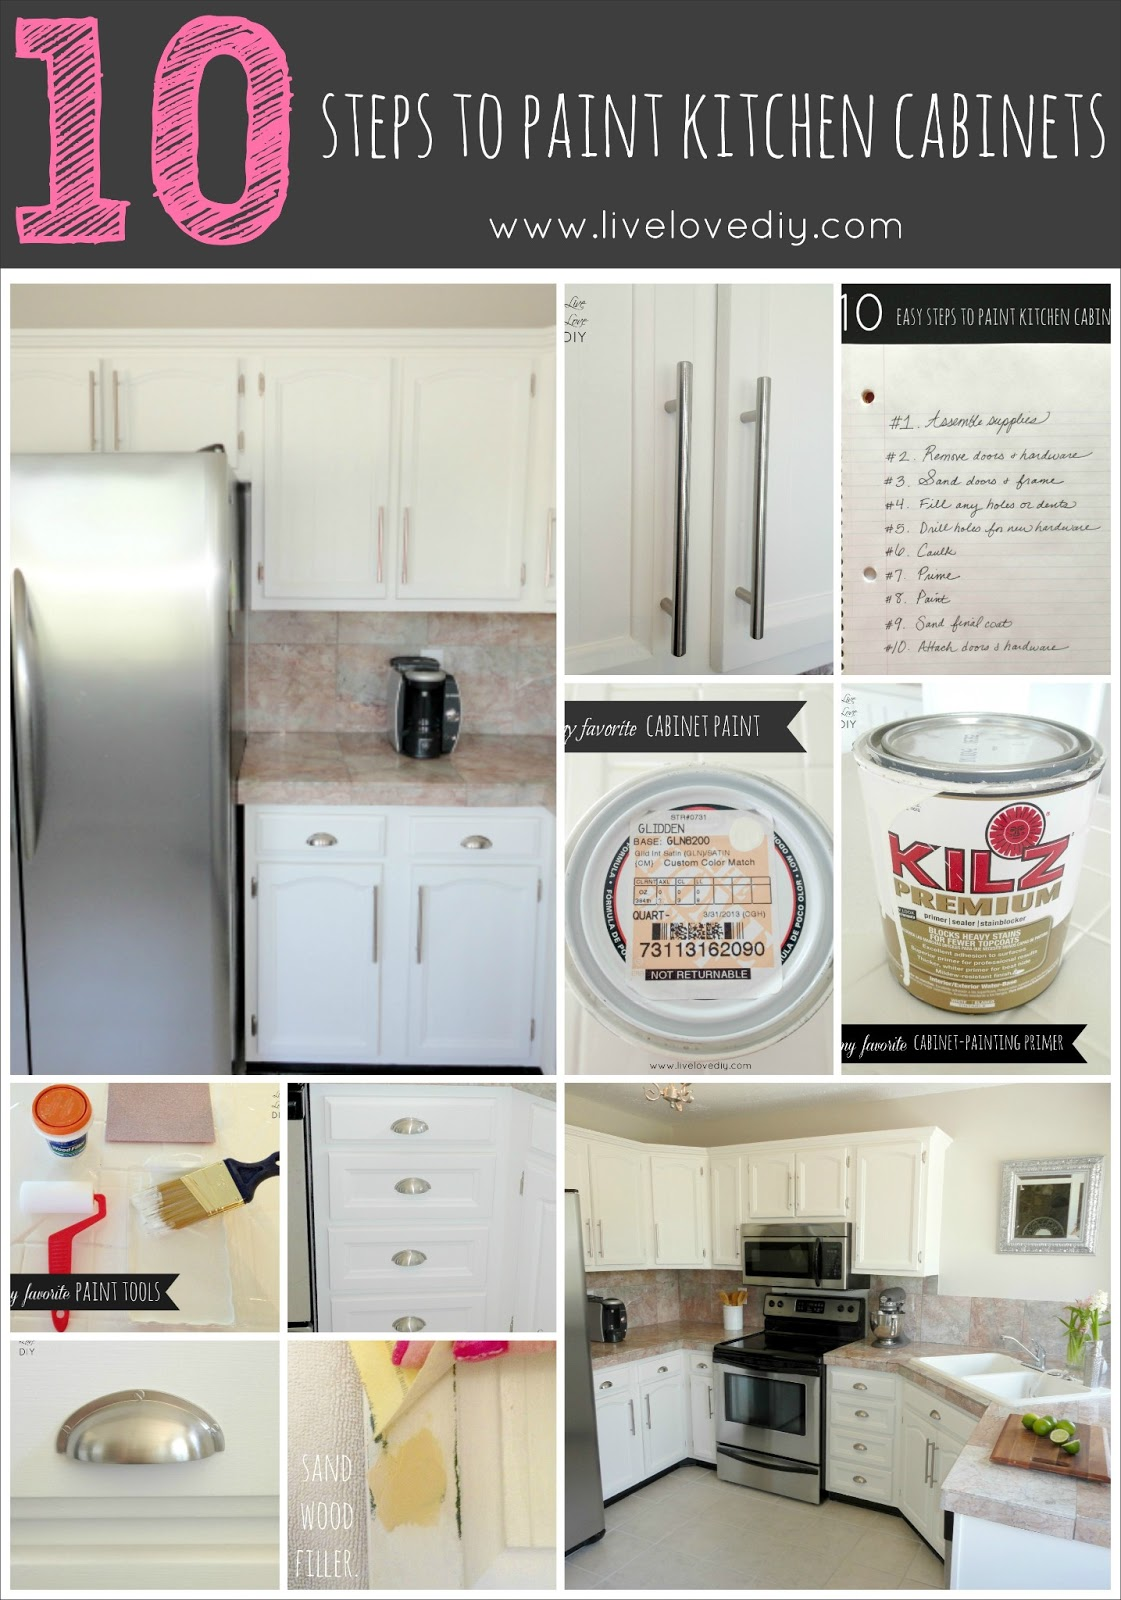 LiveLoveDIY How To Paint Kitchen Cabinets In Easy Steps - What paint to use on kitchen cabinets